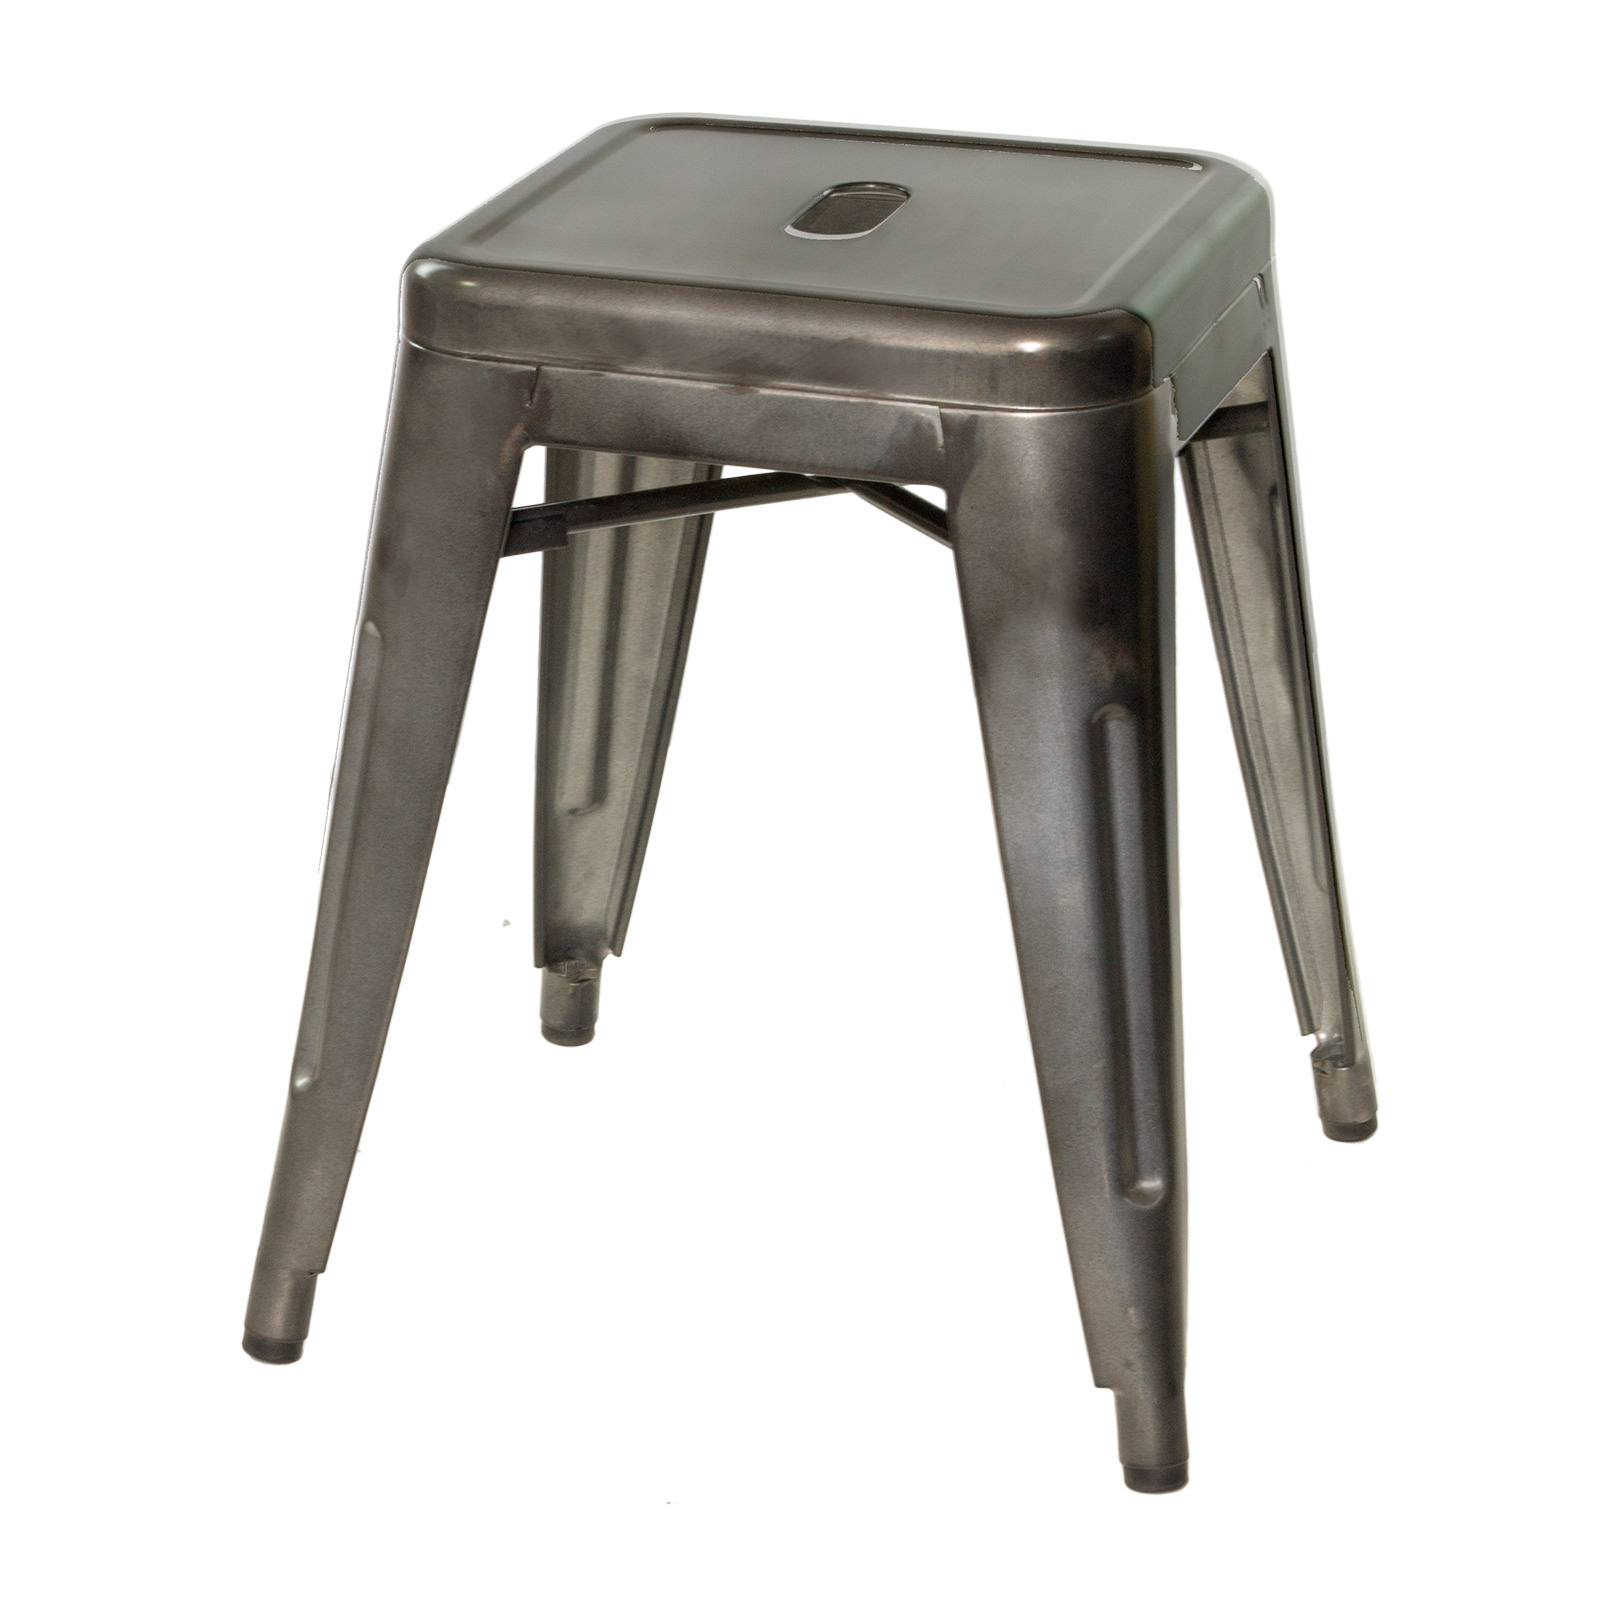 JustChair Manufacturing G42518X bar stool, stacking, outdoor